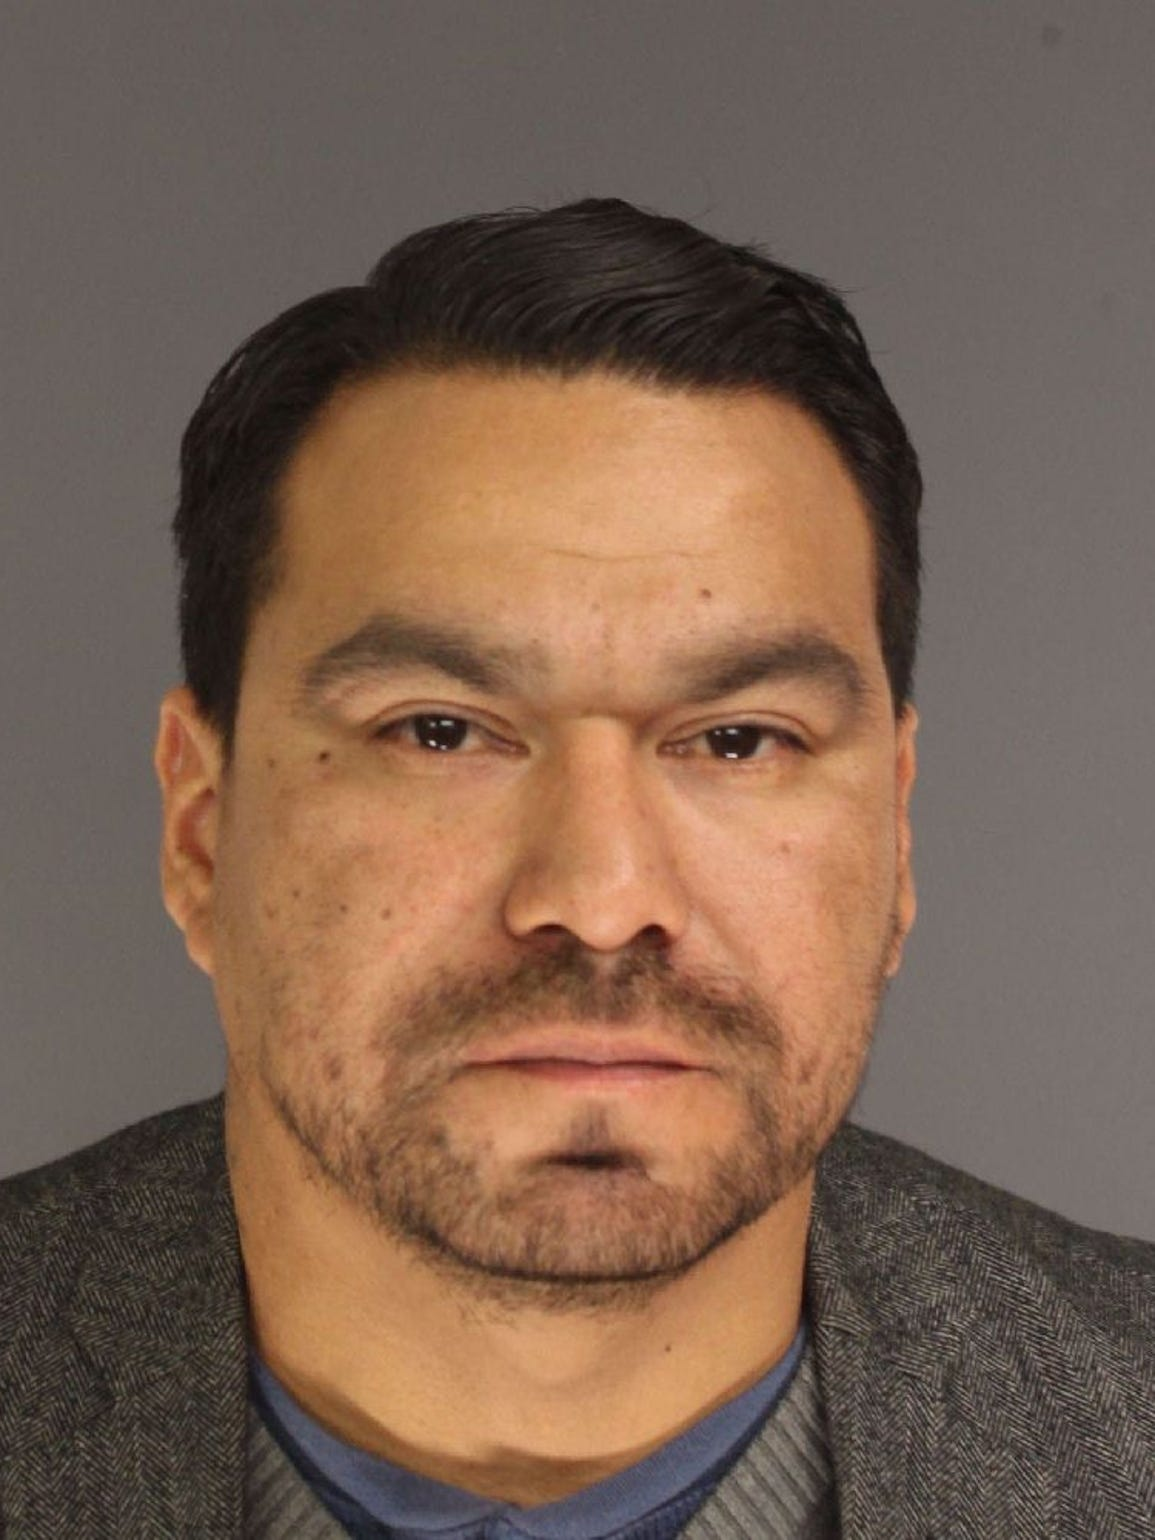 Former police officer Ricardo Arias-Vasquez was arrested and charged with criminal sexual contact and witness tampering.